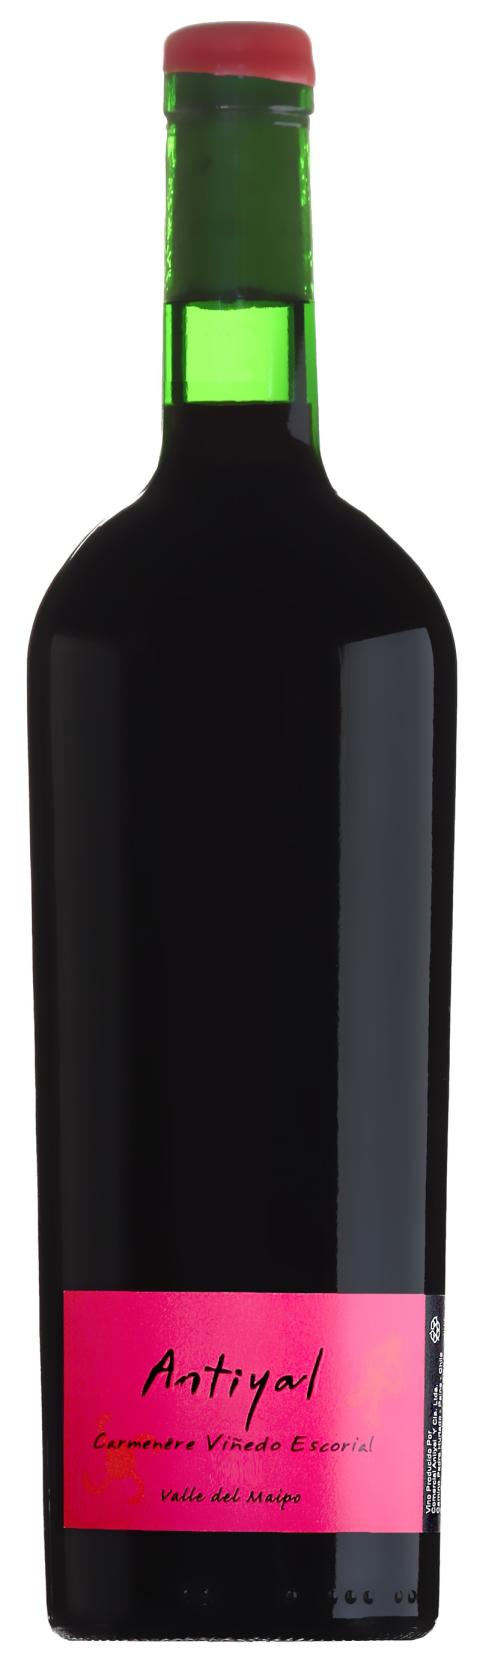 Antiyal Carmenere Viñedo Escorial 2014